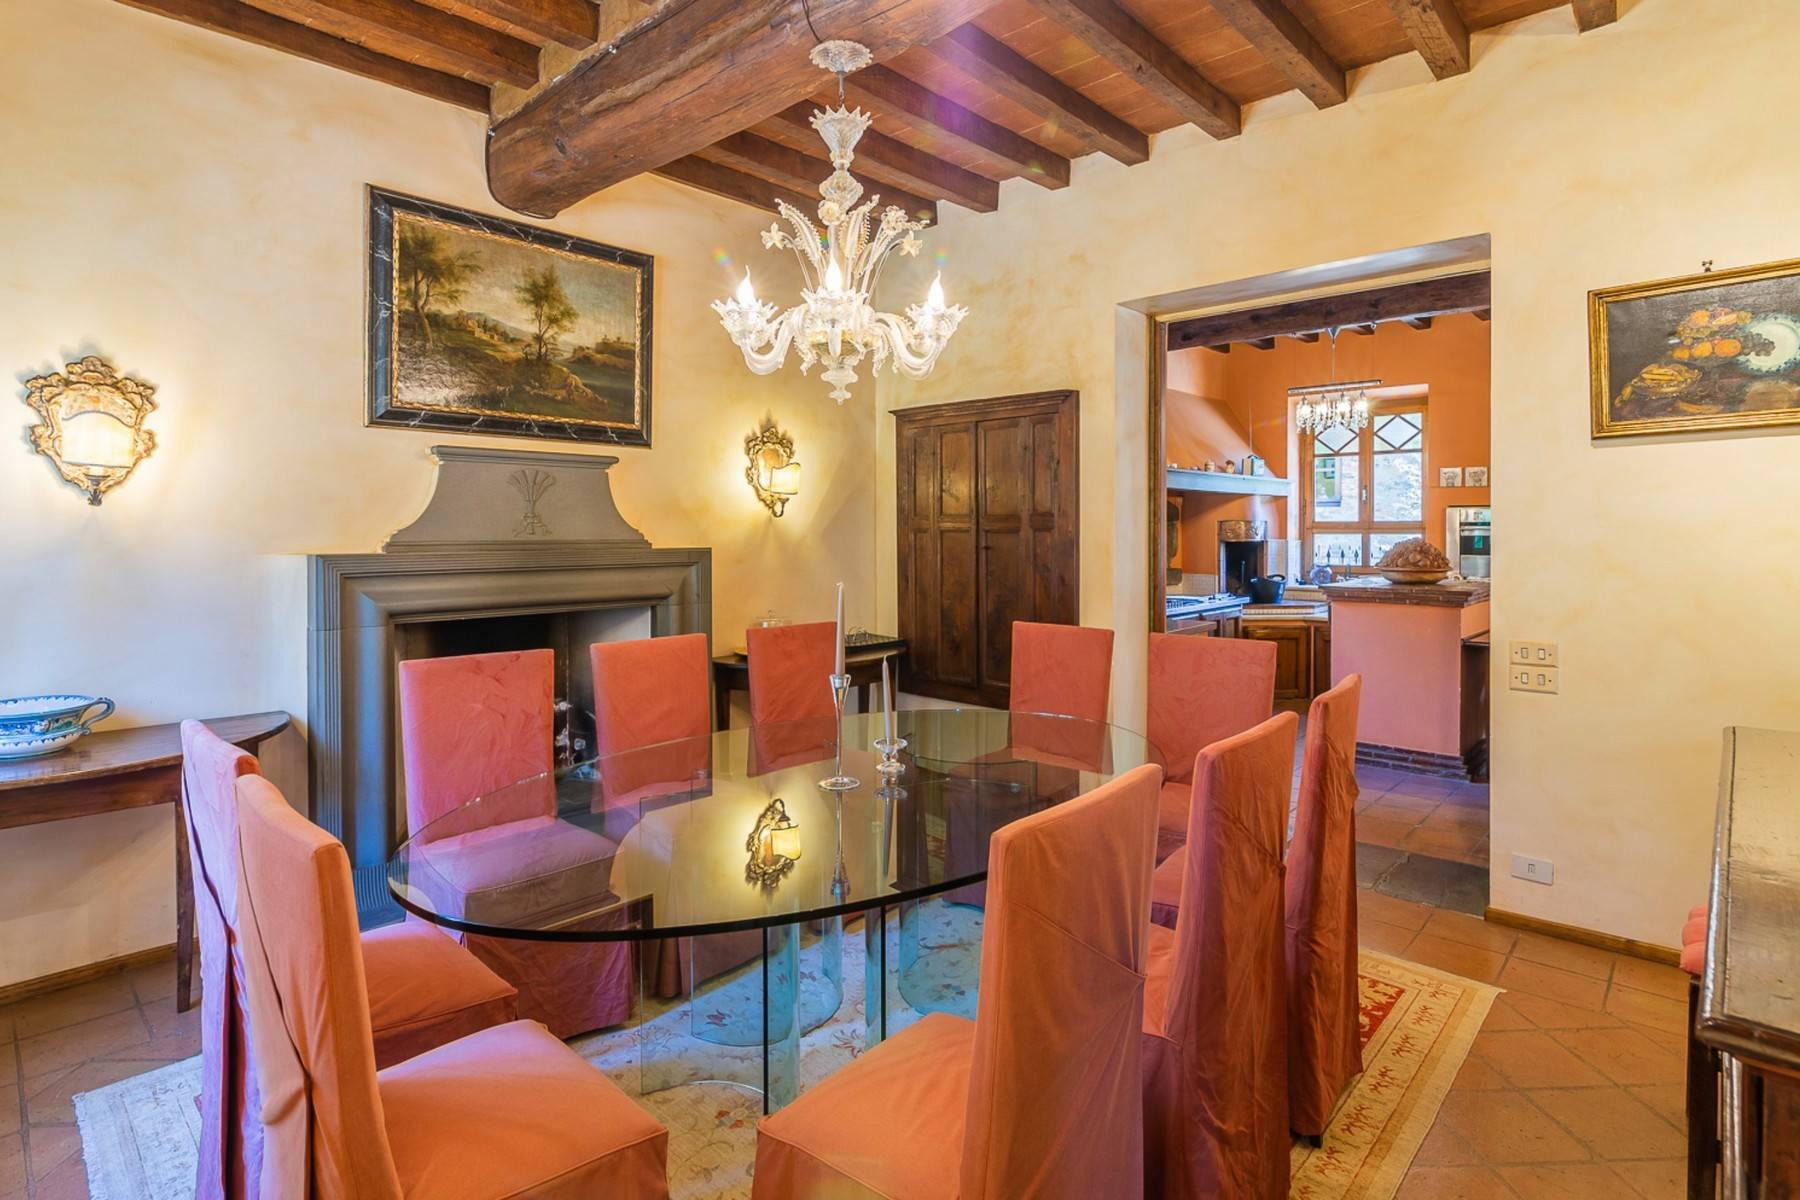 Majestic Luxury Villa with outbuildings on the hills south of Lucca - 7